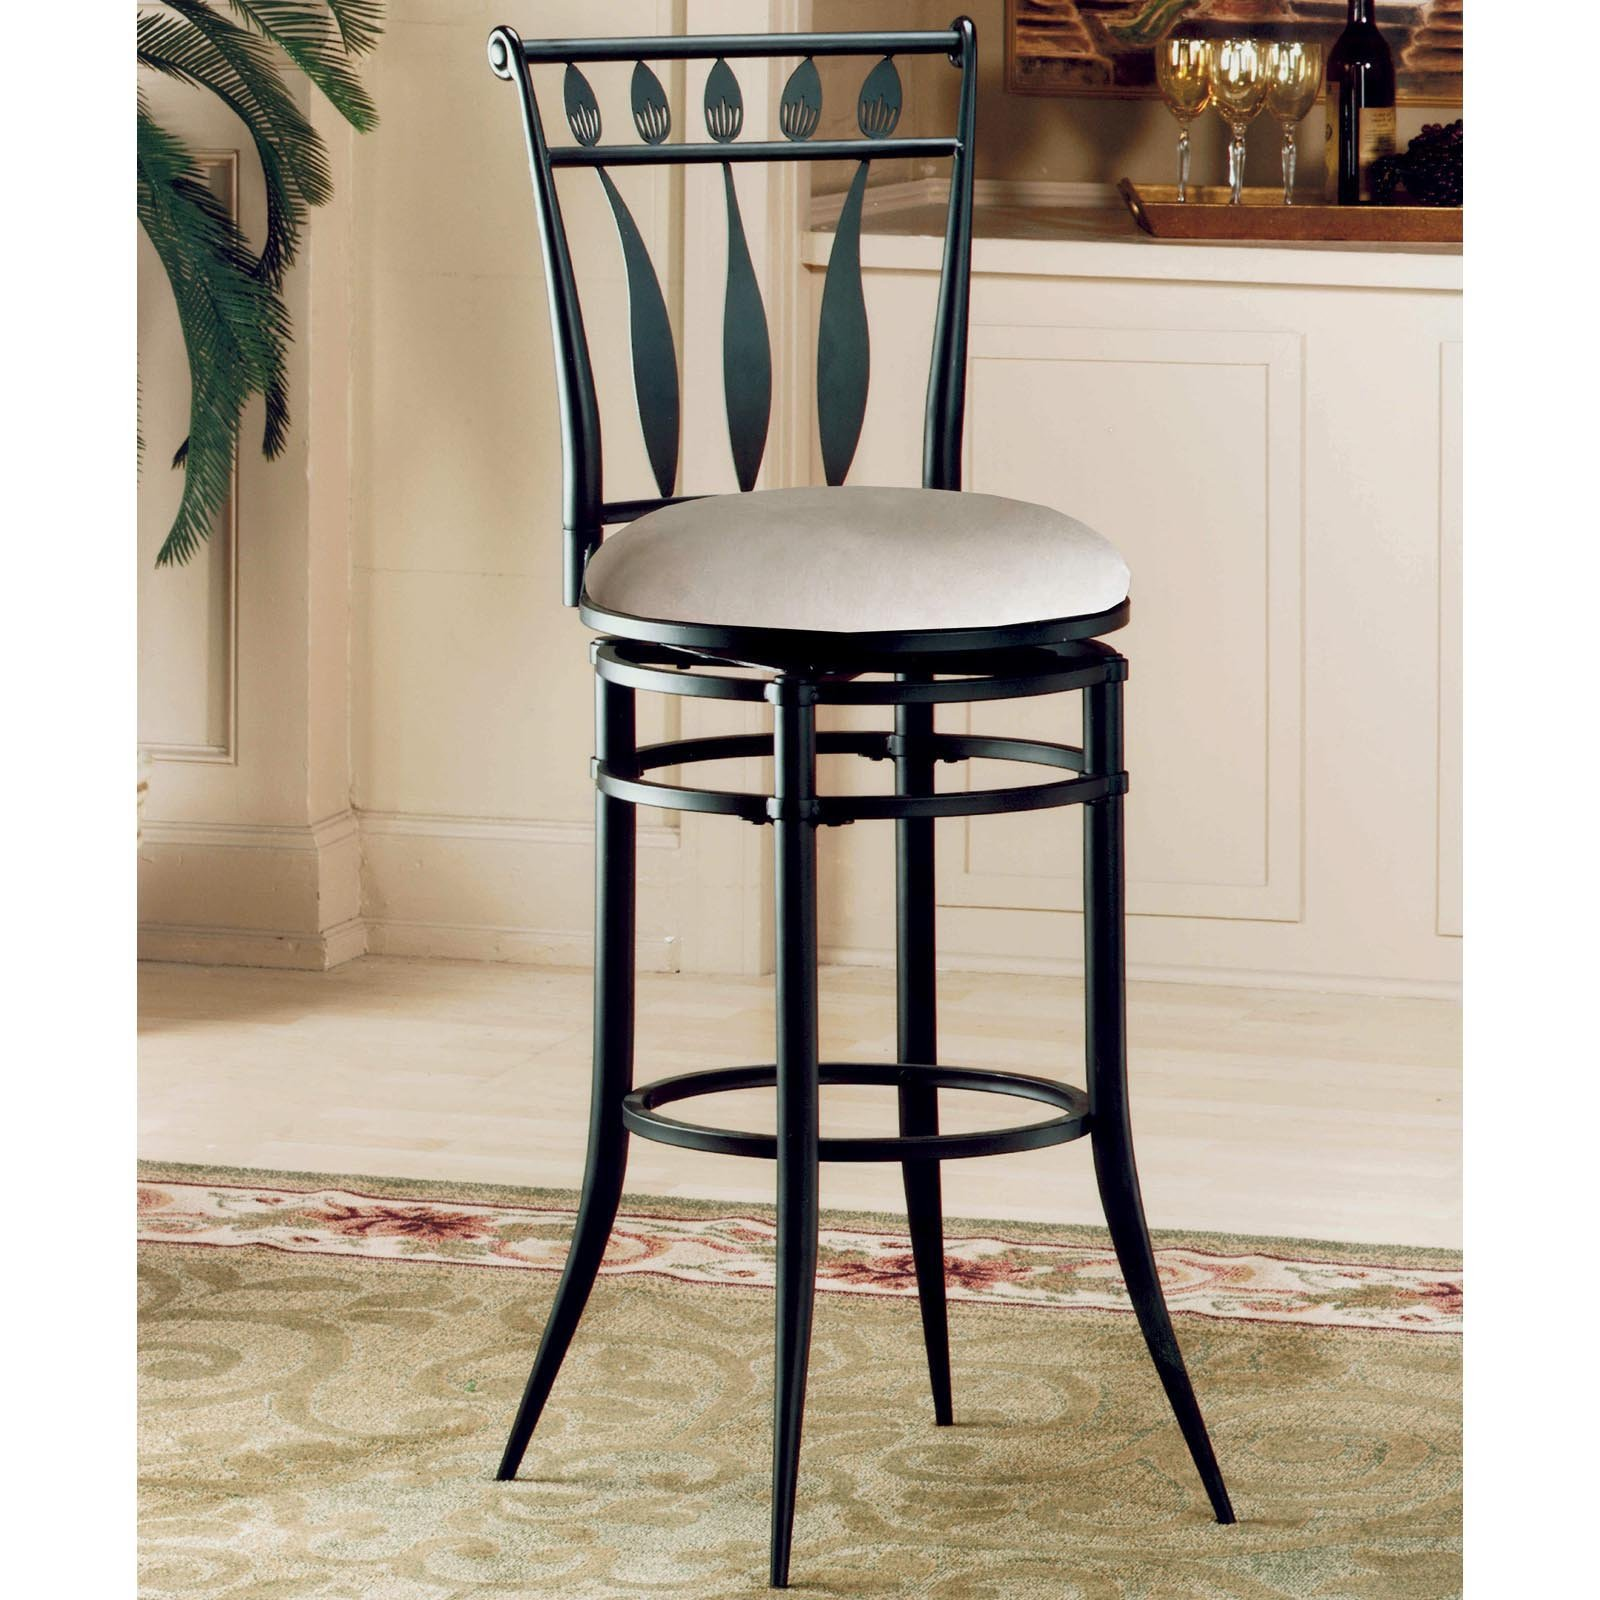 Bar stools for kitchen counter Photo - 1